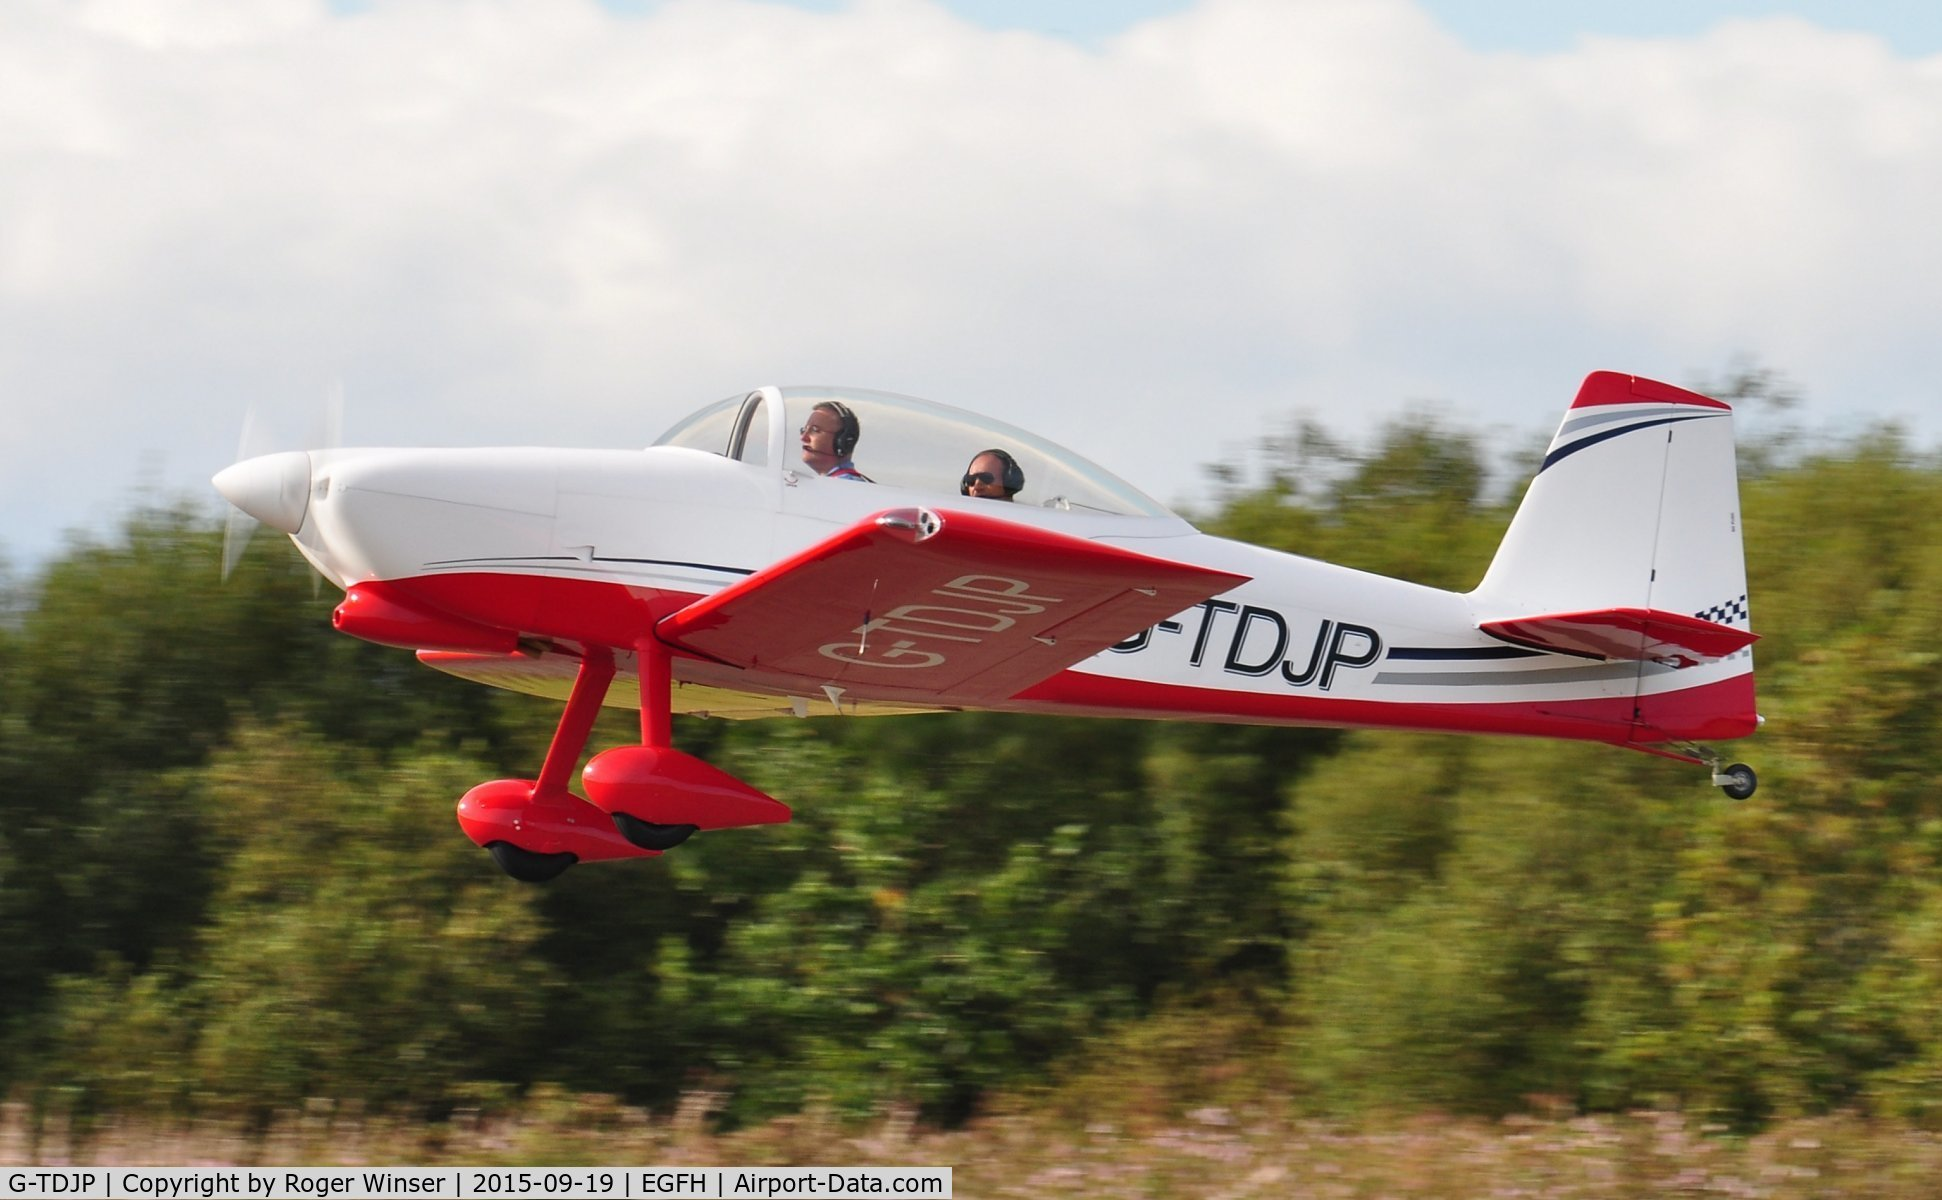 Aircraft G-TDJP (2013 Vans RV-8 C/N LAA 303-15056) Photo by